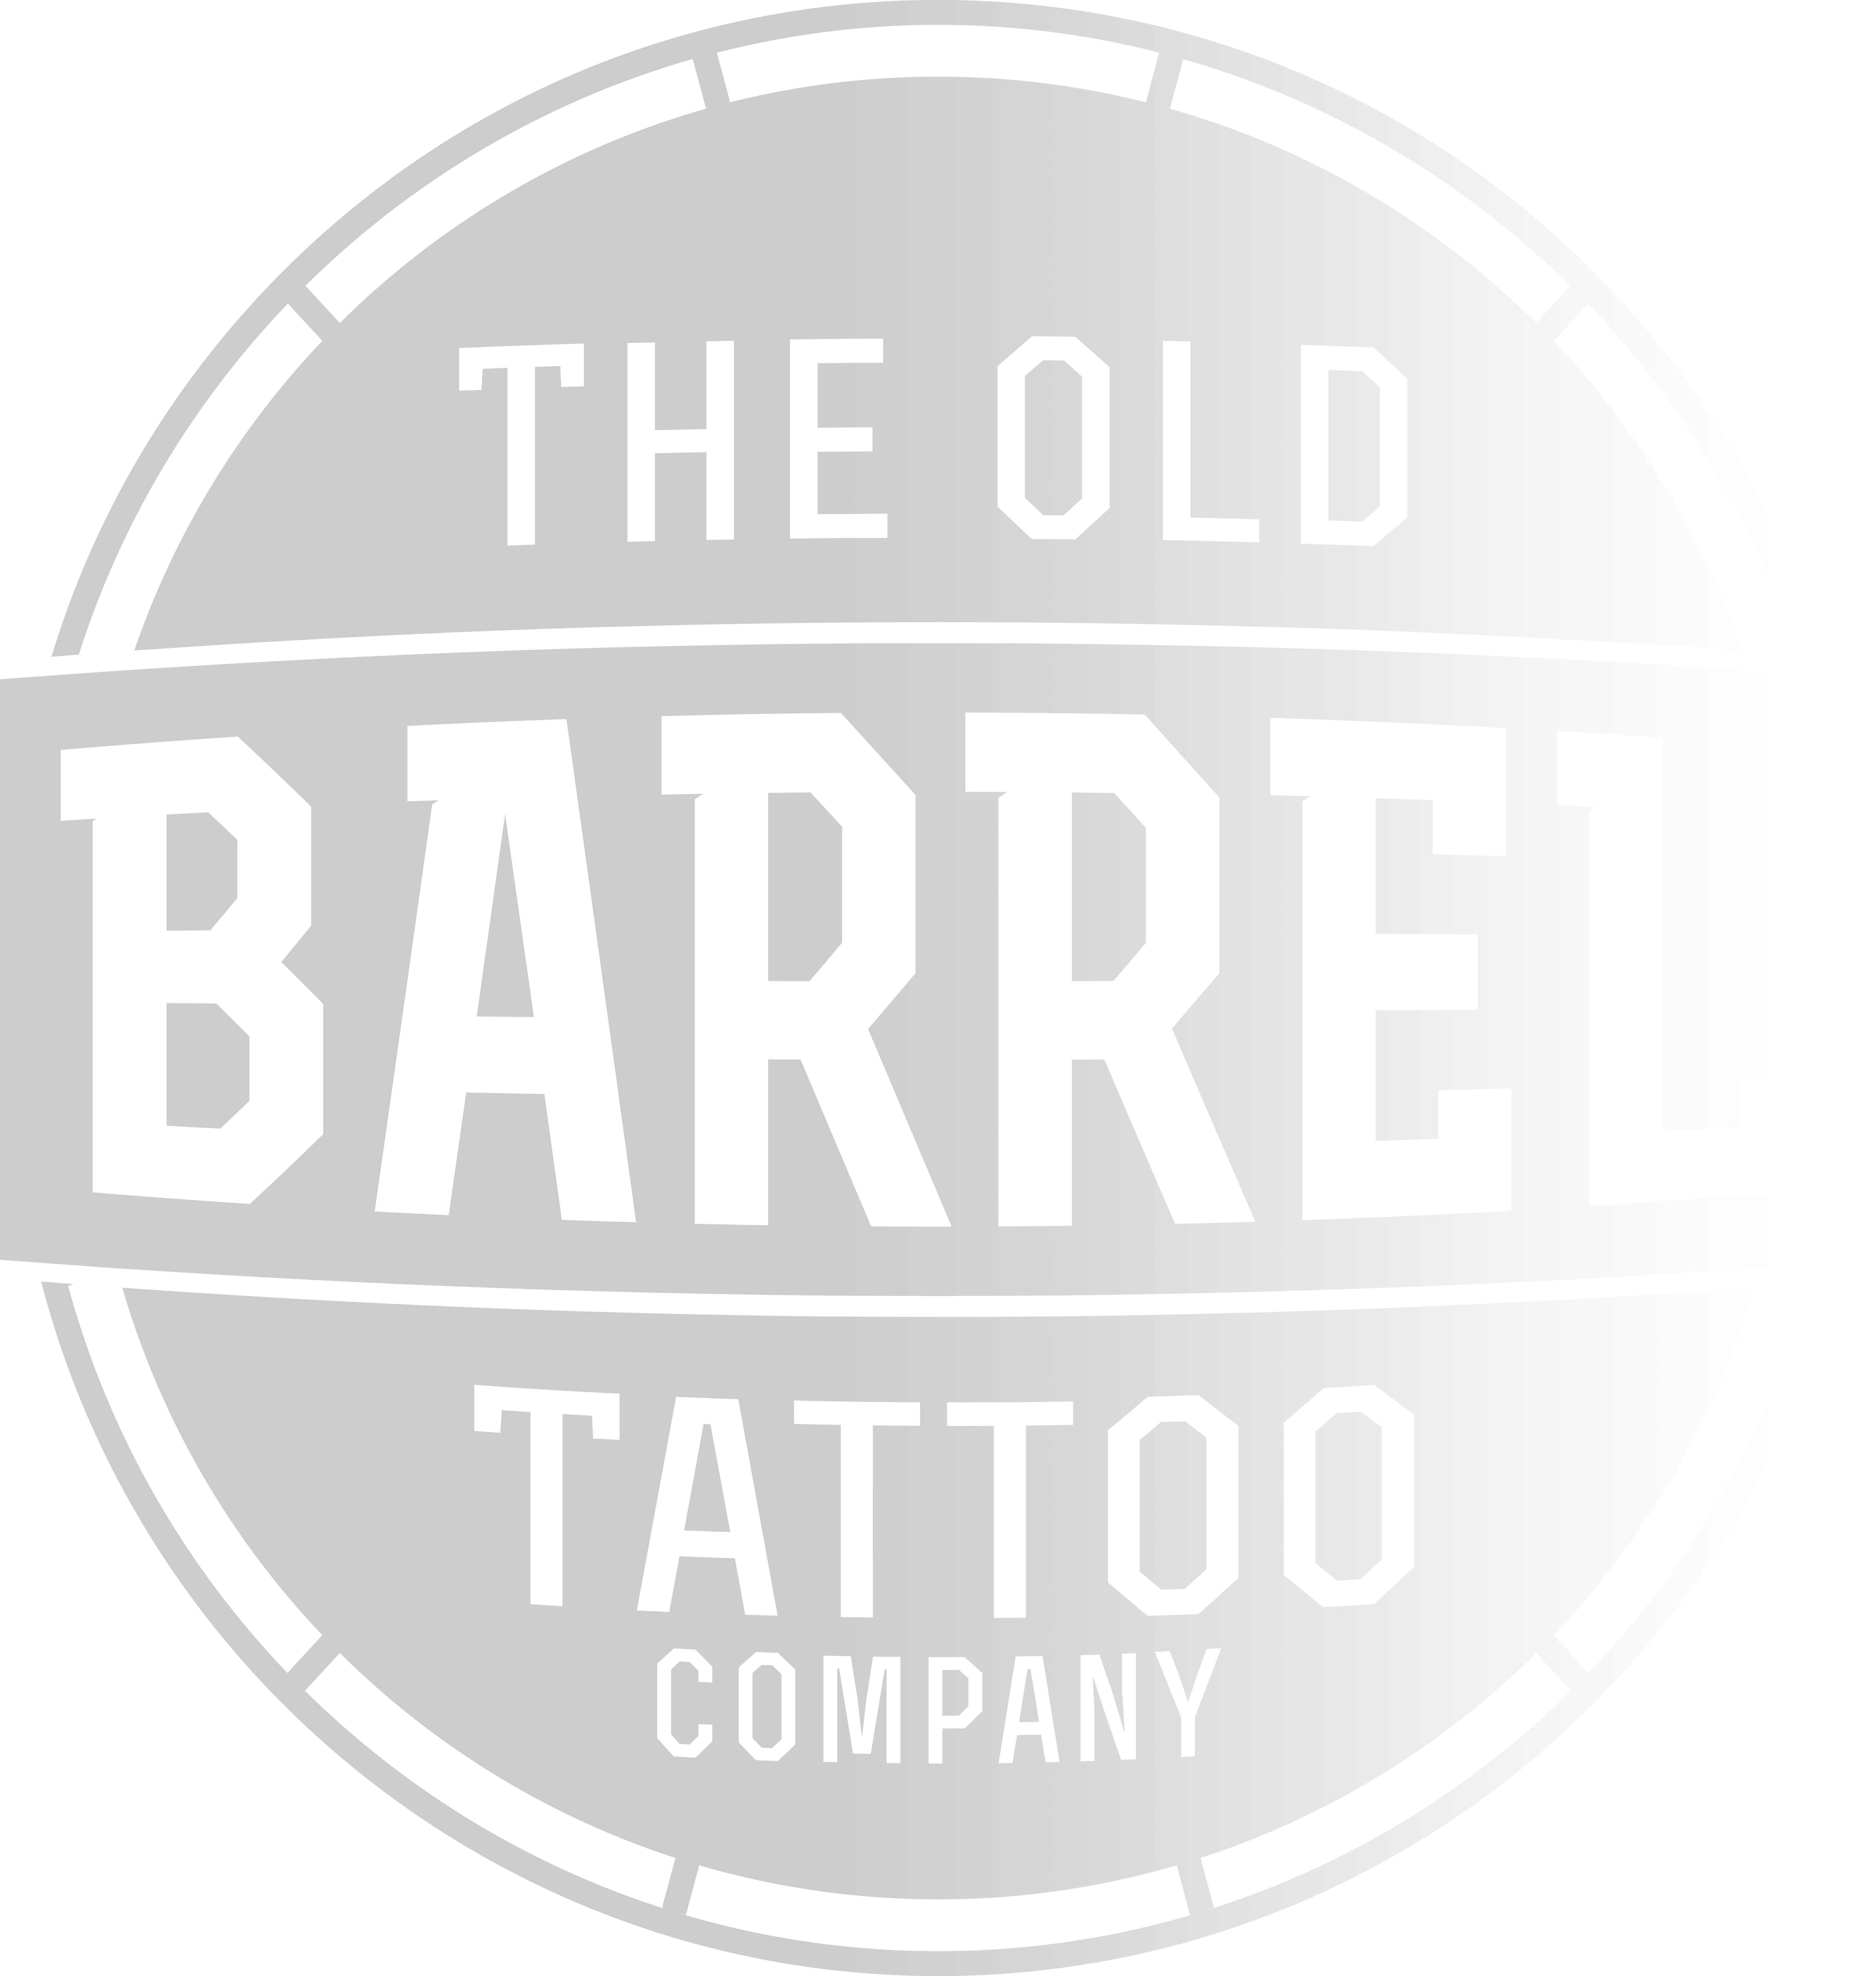 The Old Barrel Tattoo, Michael Burger